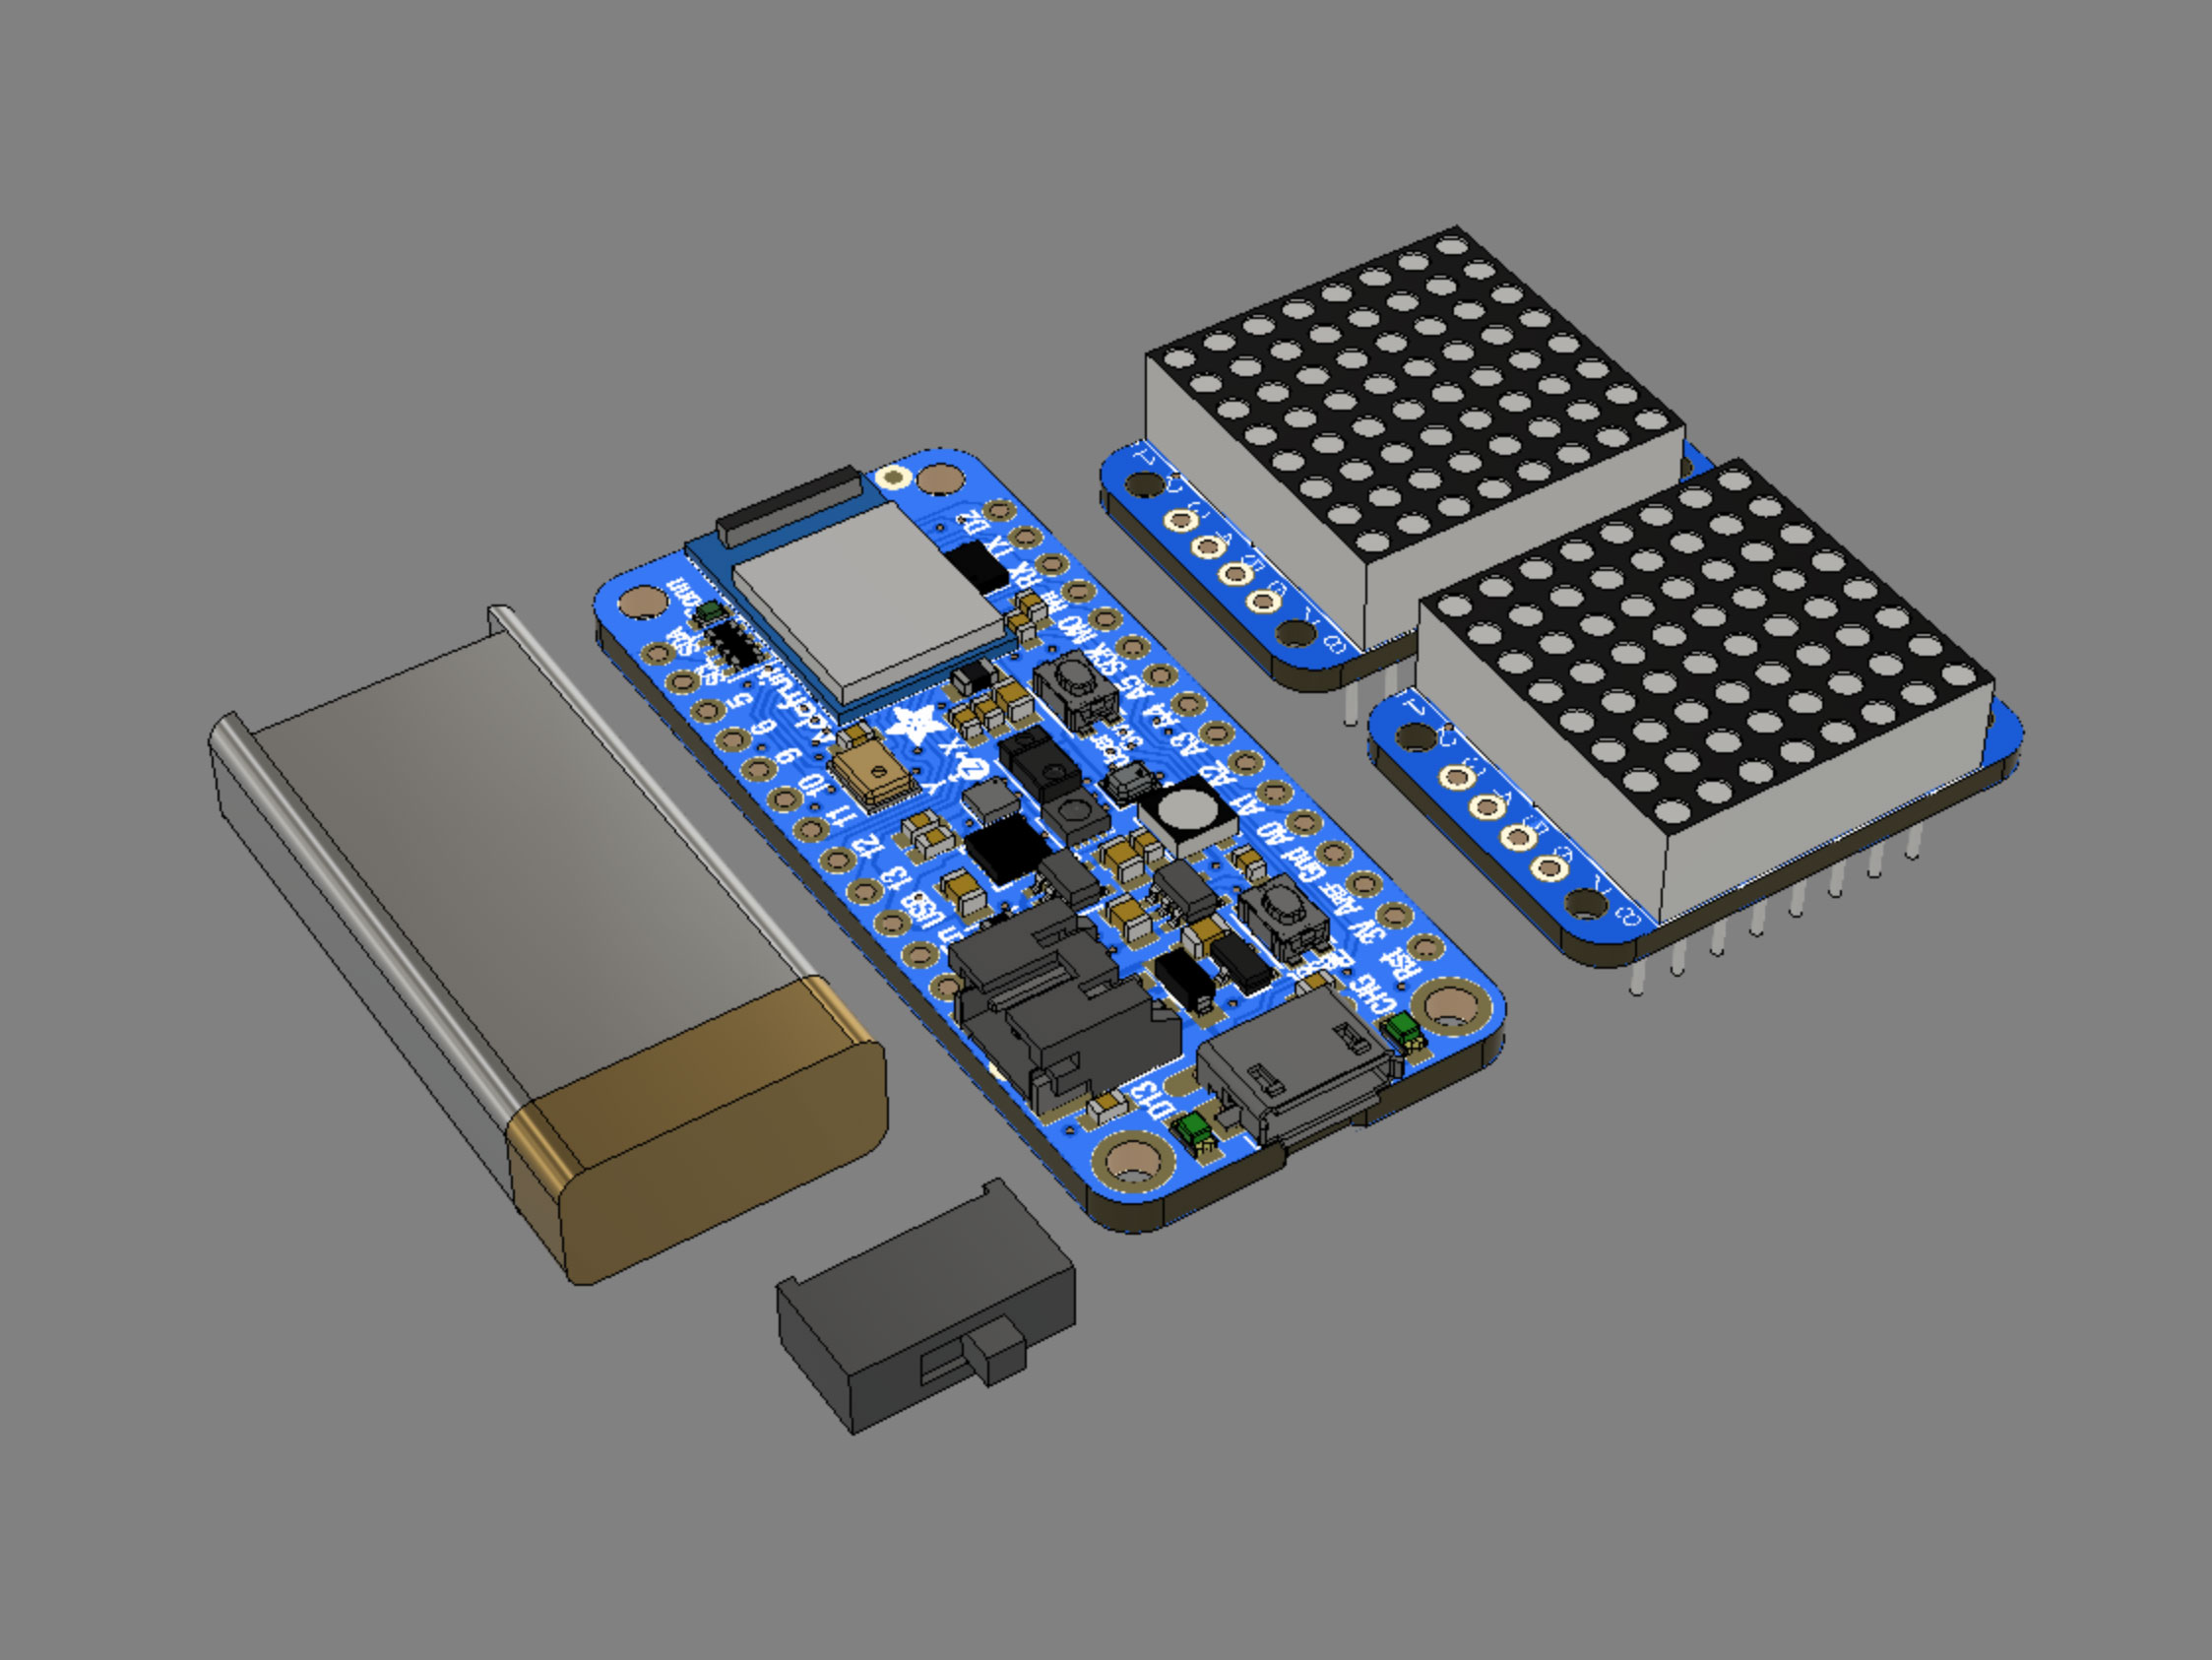 led_matrices_3d-cad-parts.jpg